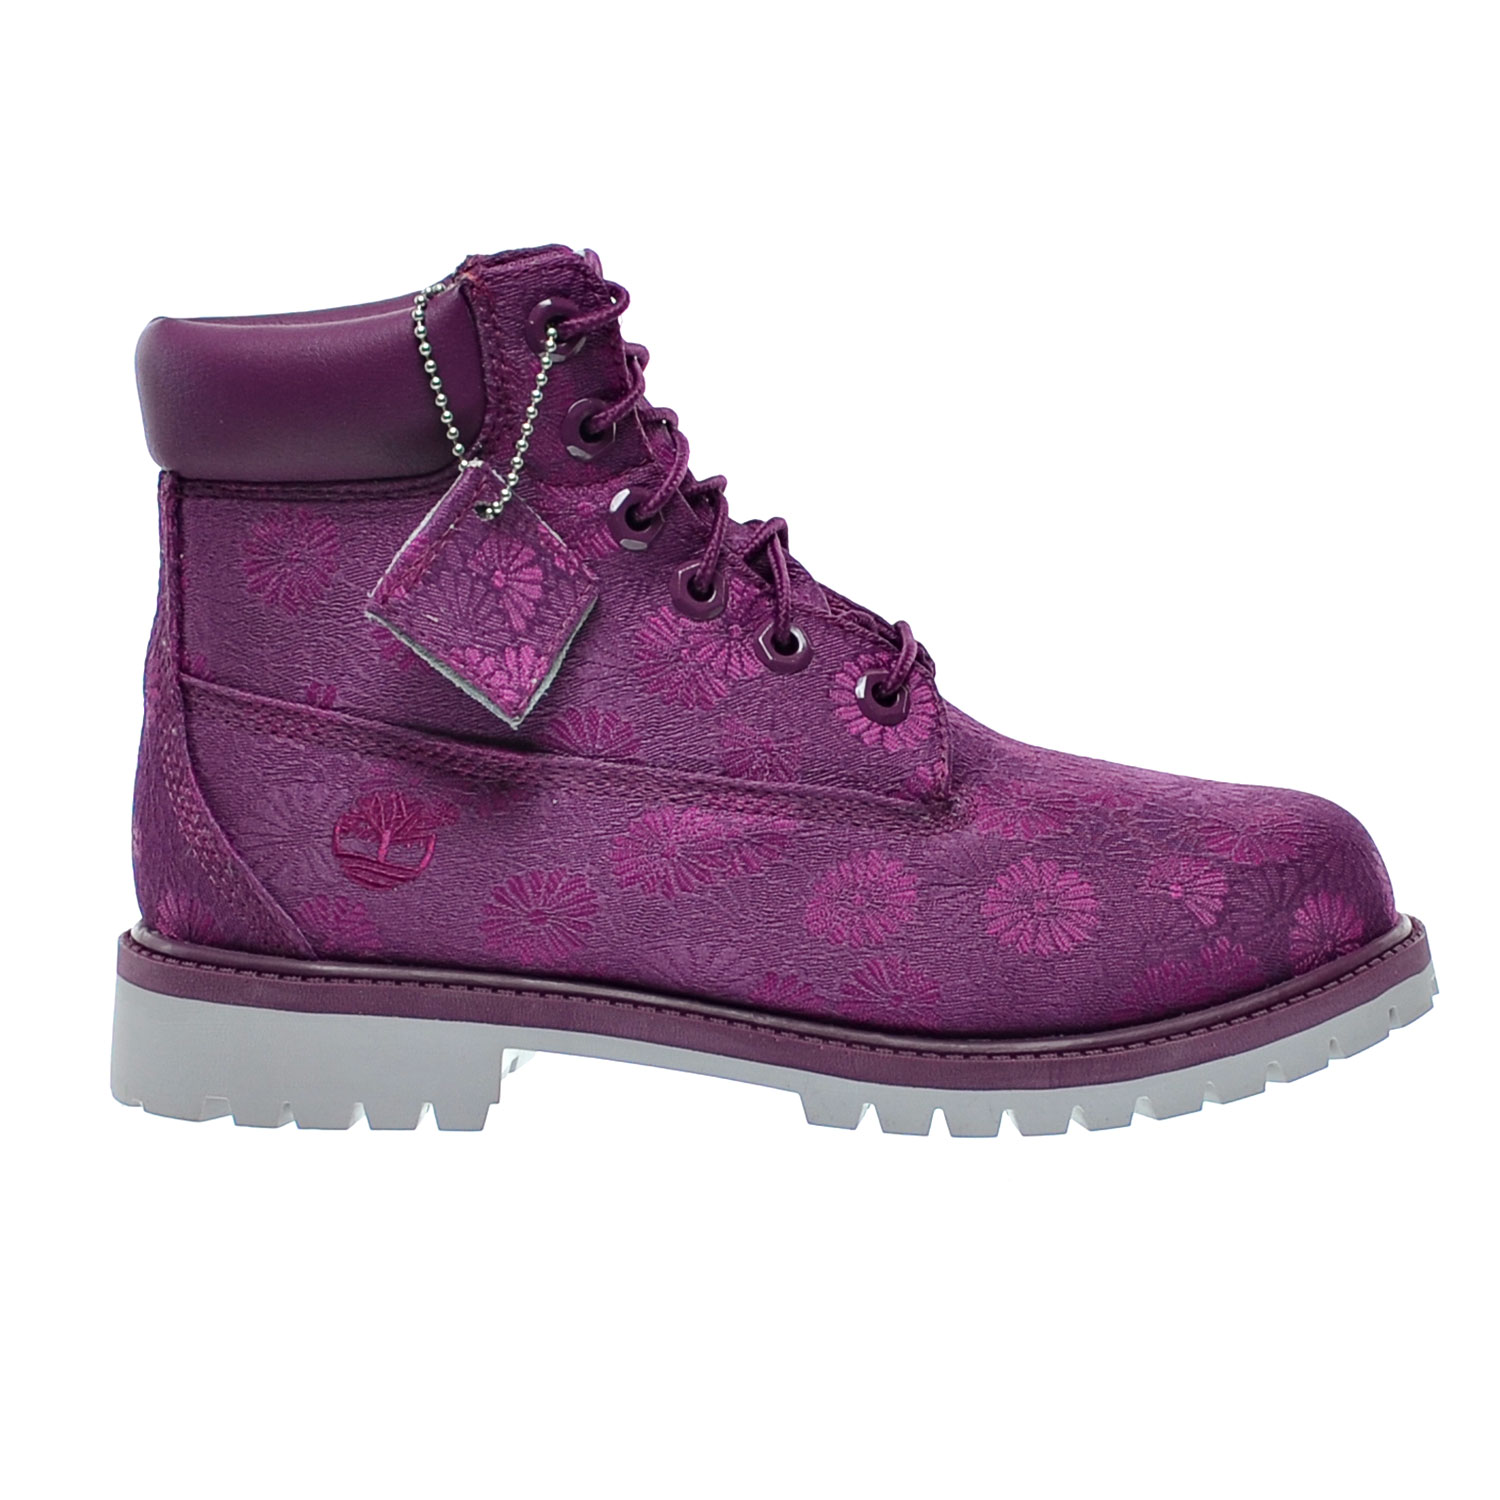 Details about Timberland 6 Inch Classic Big Kids Boots Magenta Floral tb0a174b